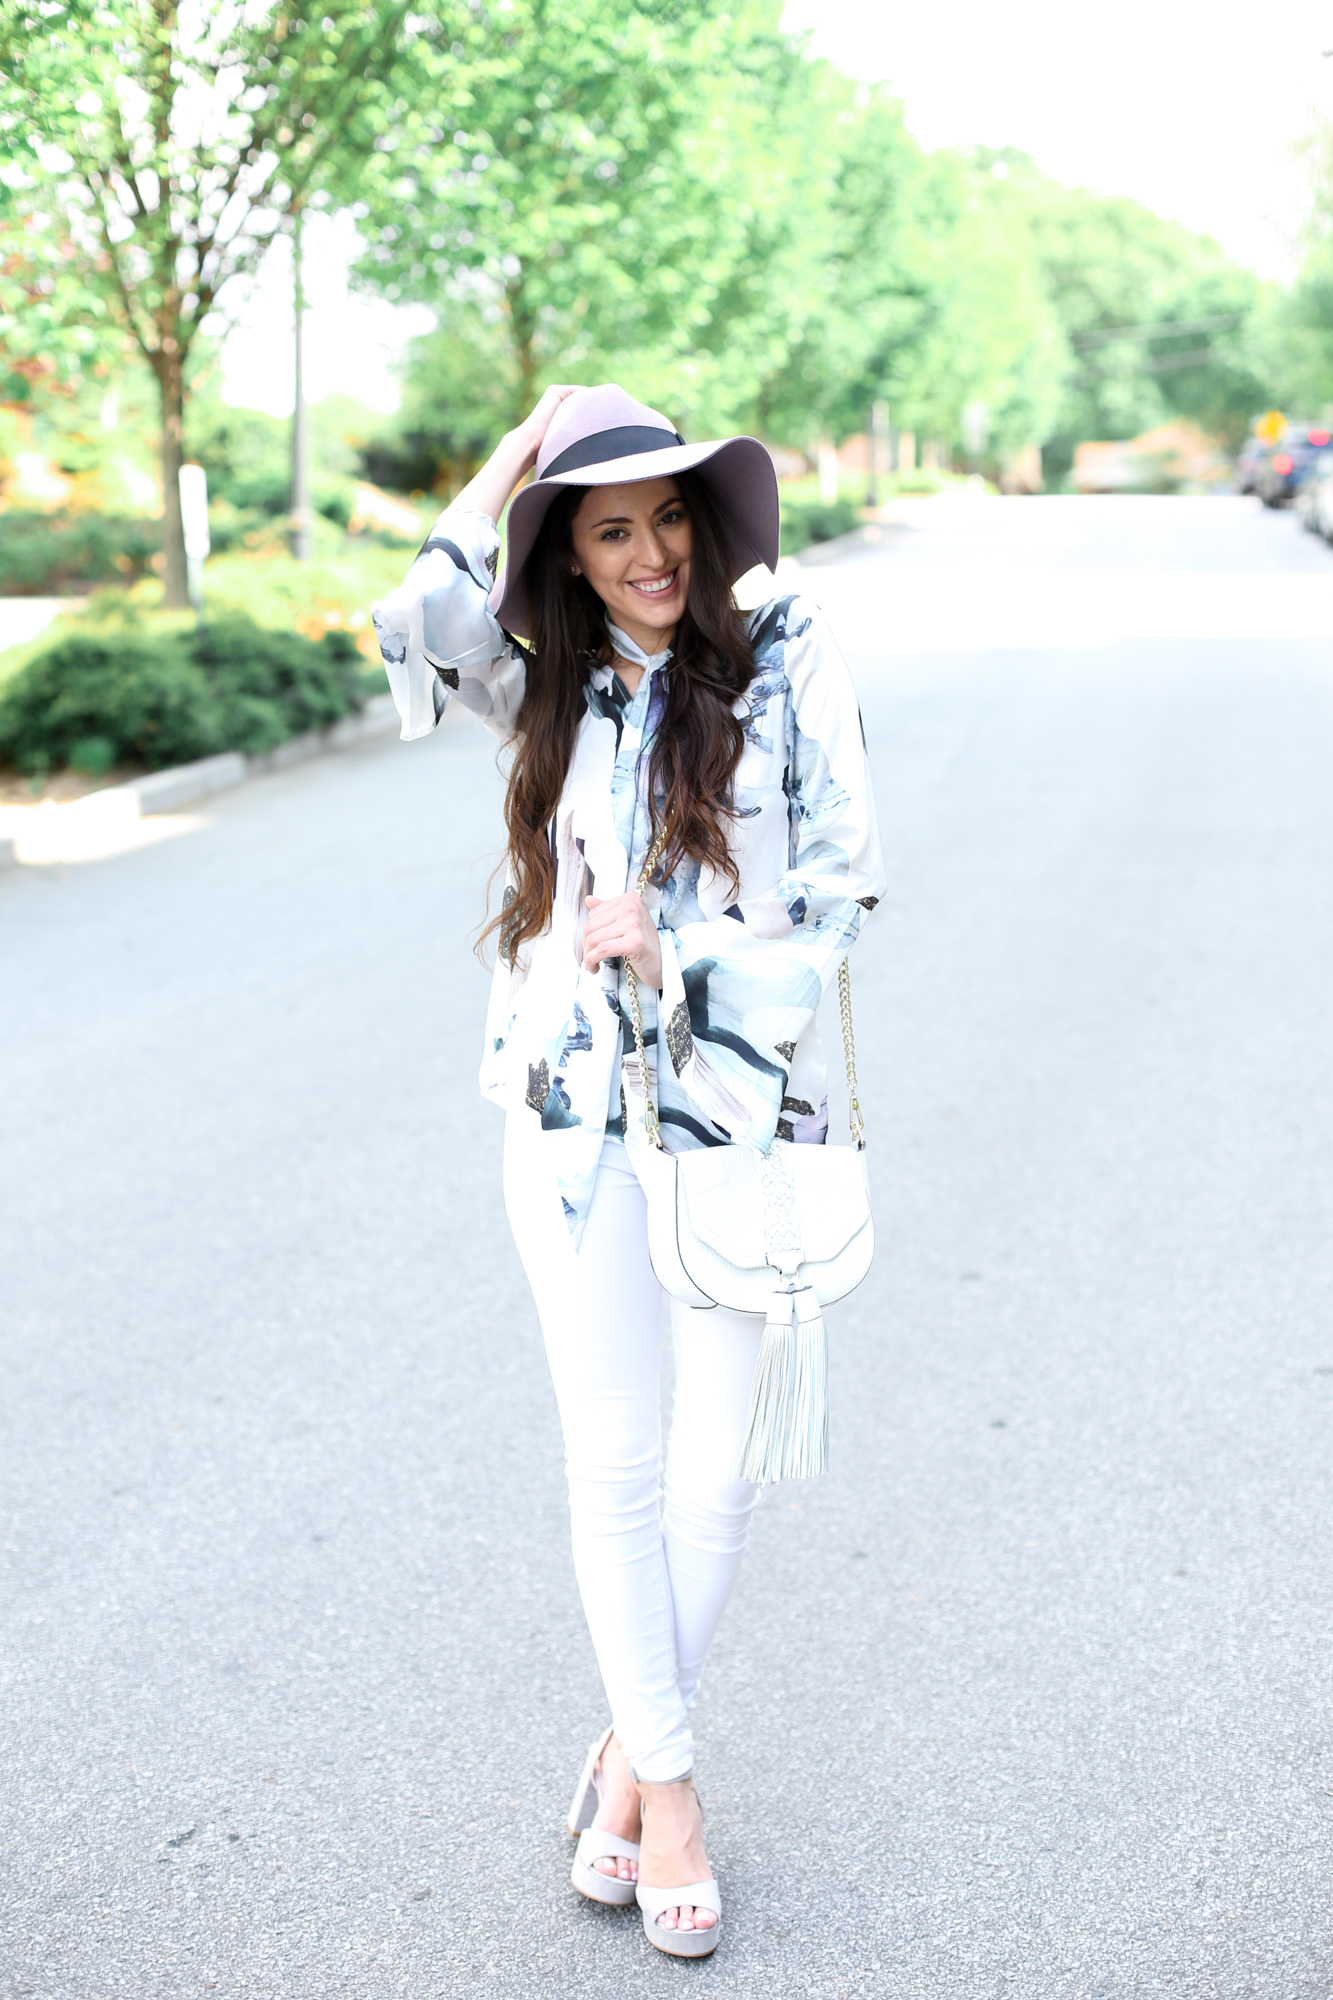 spring style, 70s vibes, 60s glam, 70s glam, spring chic, how to style a hat for spring, chinese laundry theresa smoke grey, purple floppy hat, wide brim fedora, wide brim hat, rebecca minkoff fringe crossbody